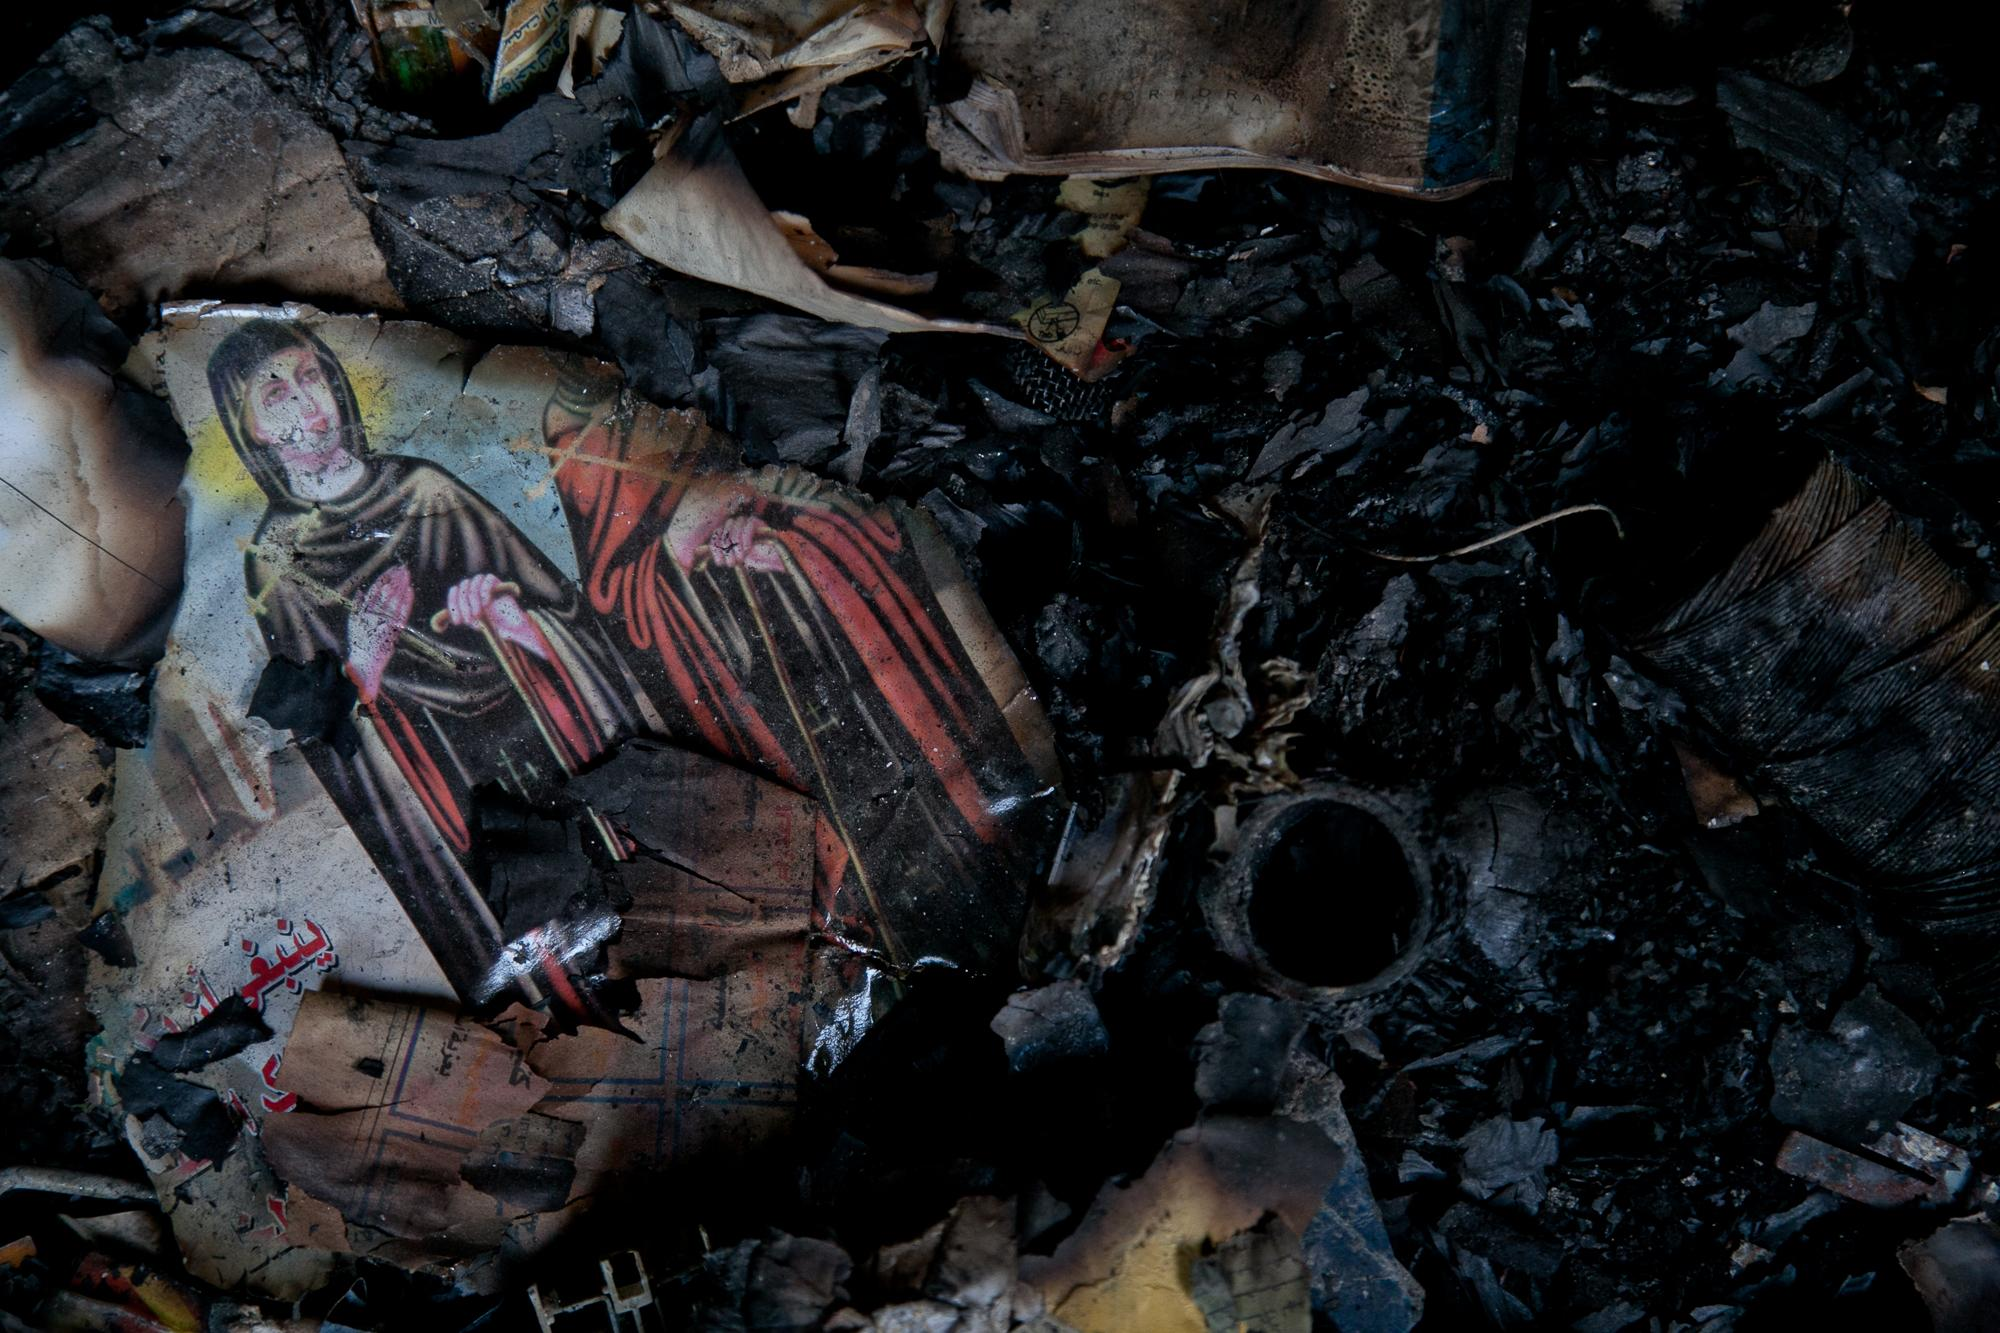 Father Samuel Aziz Abdou's home in Minya was set on fire on August 14, 2013. It came under attack by a pro-Morsi mob. What is left of Father Abdou's library, burned books and religious pictures that are a constant reminder of that day.